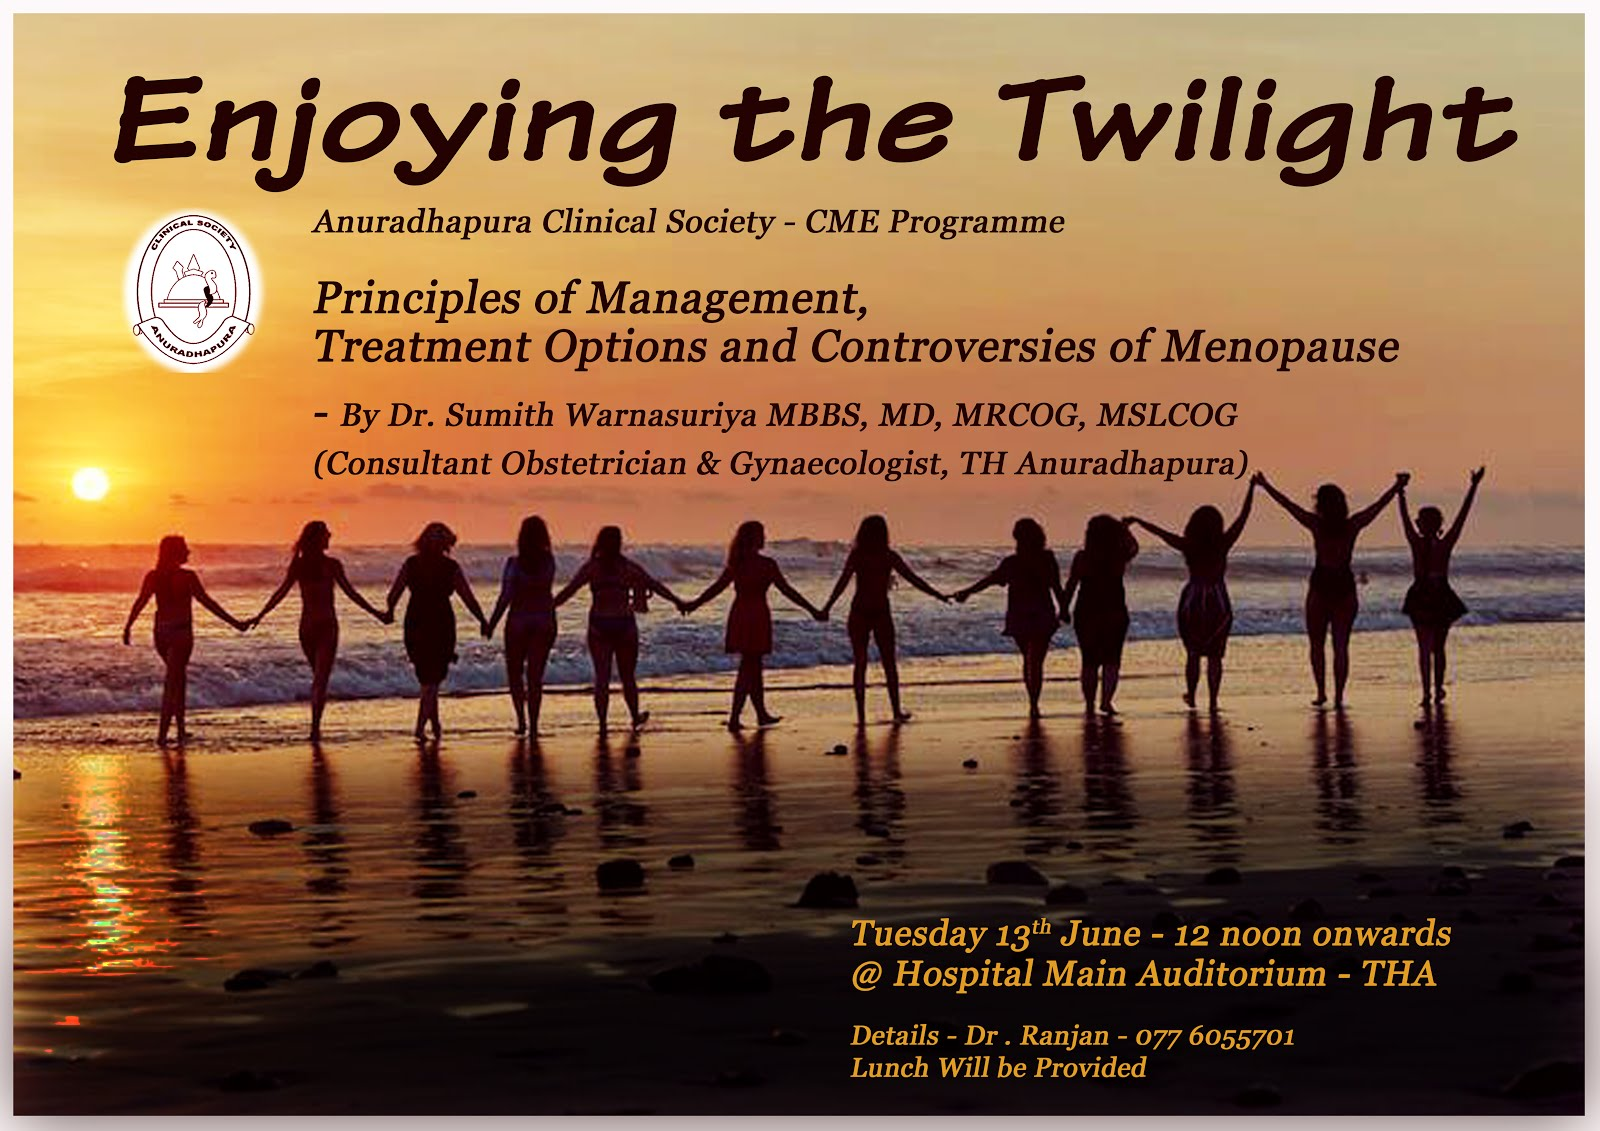 CME Lecture - Enjoying the Twilight